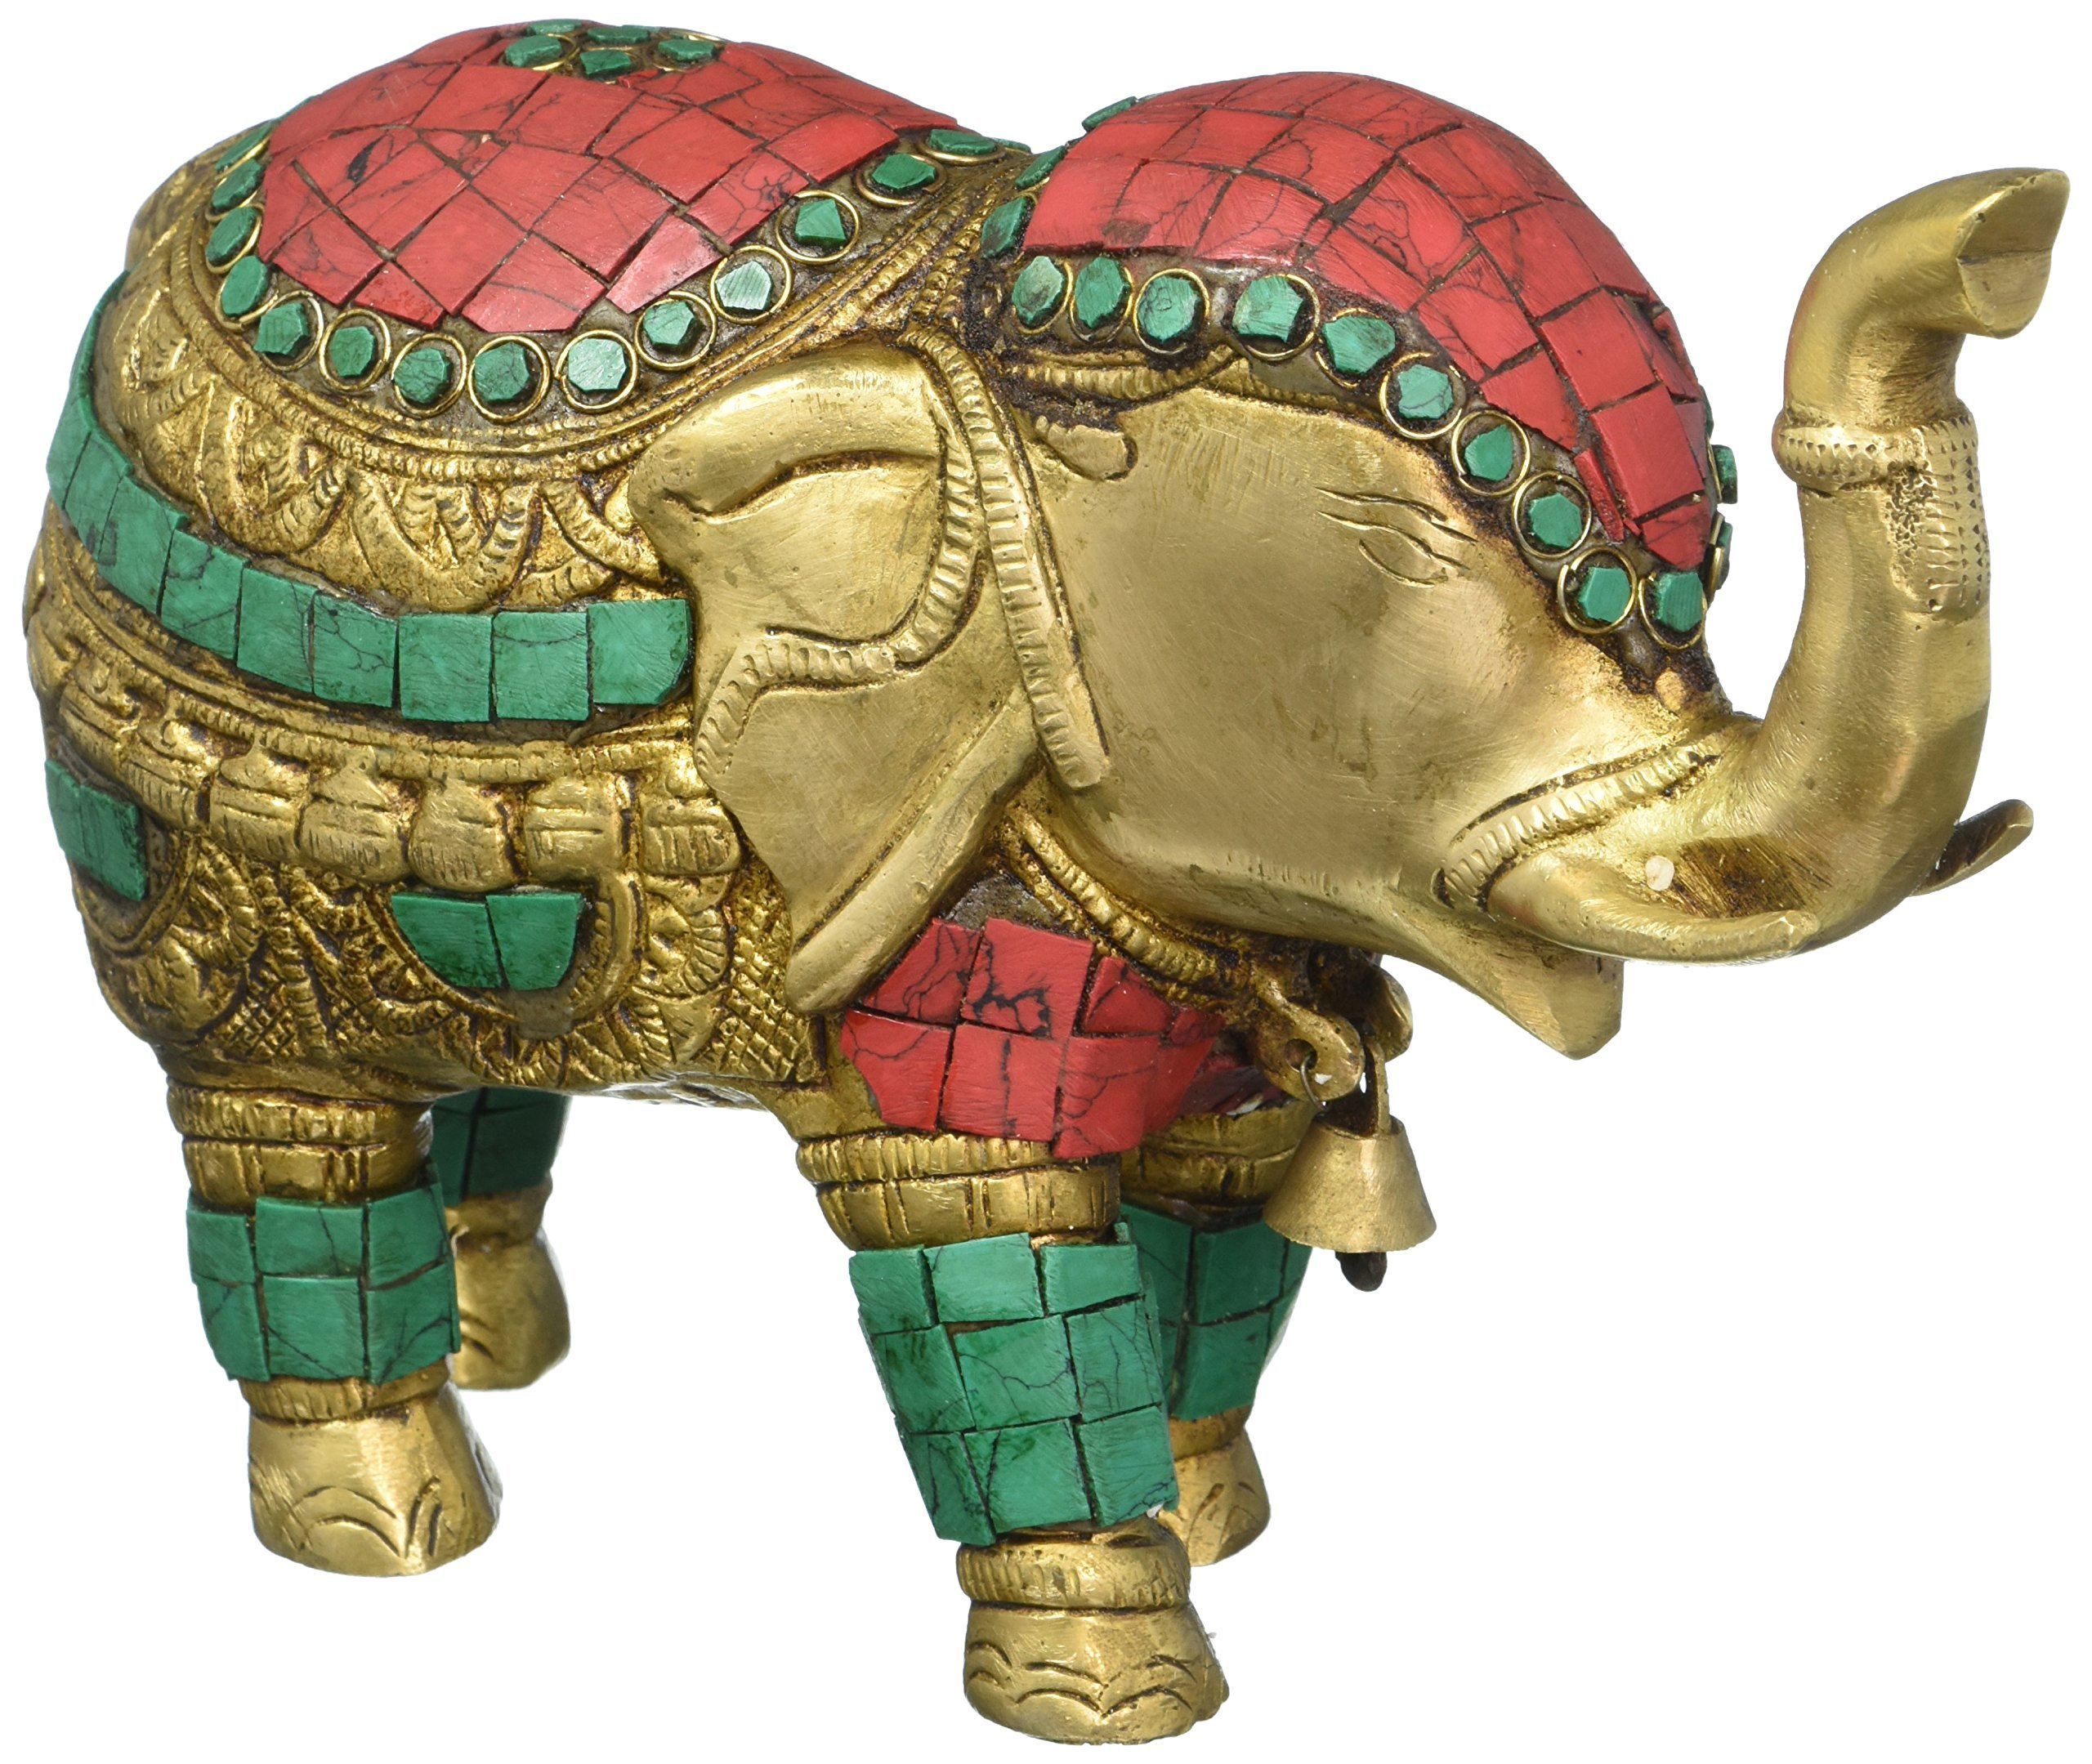 Aone India Thai Trunk up Elephant Figurine - Metal Brass Elephant with Turquoise Gemstones Handwork- Vintage Style Animal Collectible Home Decor Sculpture + Cash Envelope (Pack Of 10) by AONE INDIA